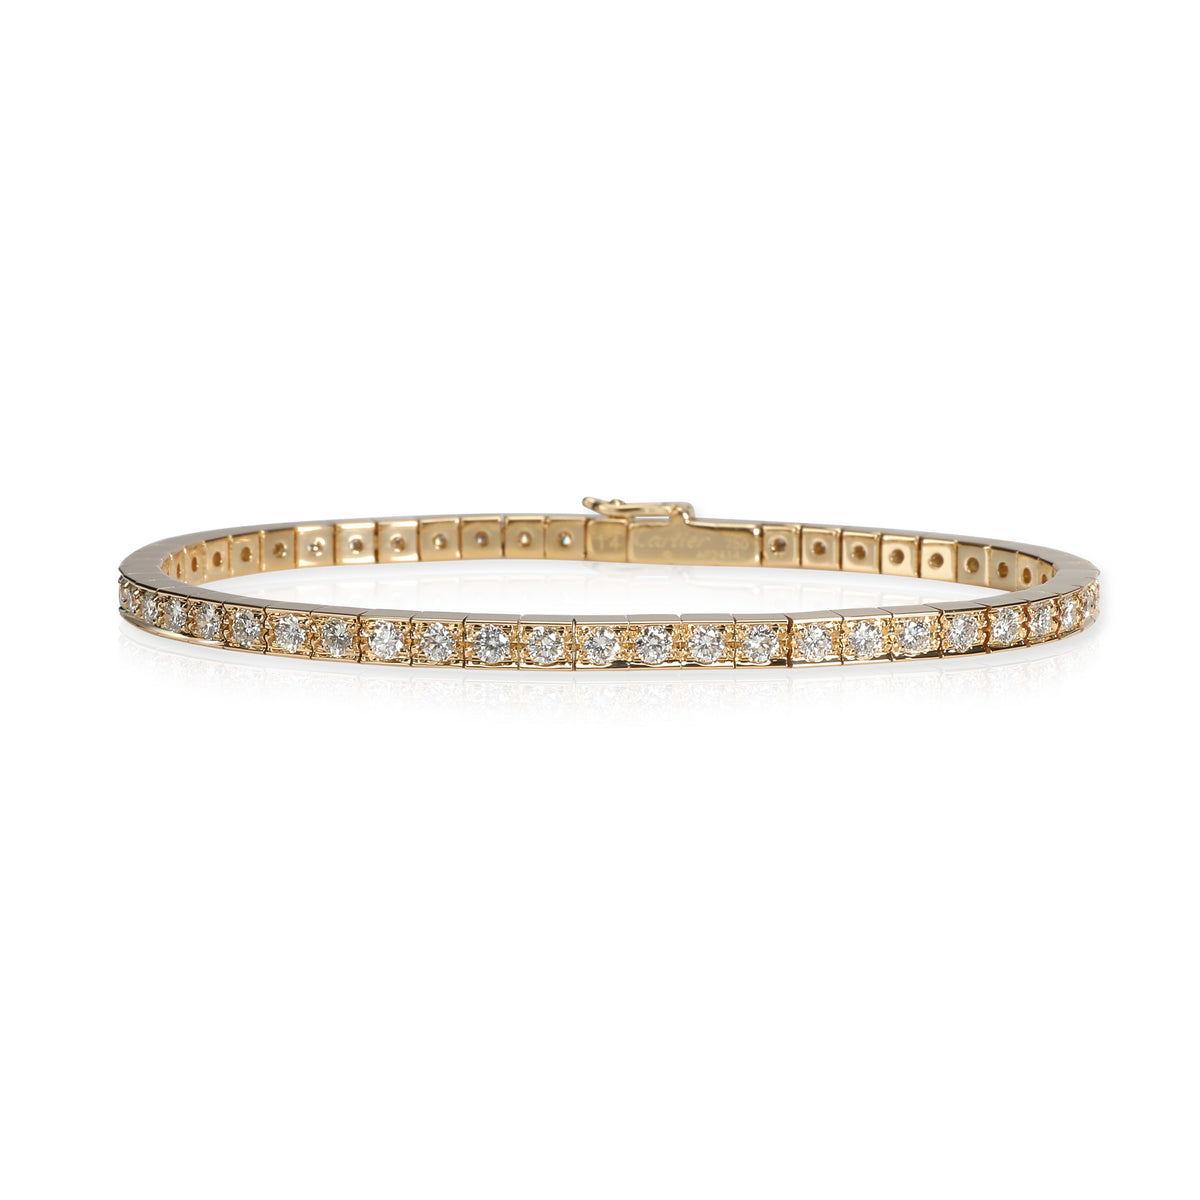 Cartier Lanieres Diamond Bracelet in 18K Yellow Gold 1.80 CTW